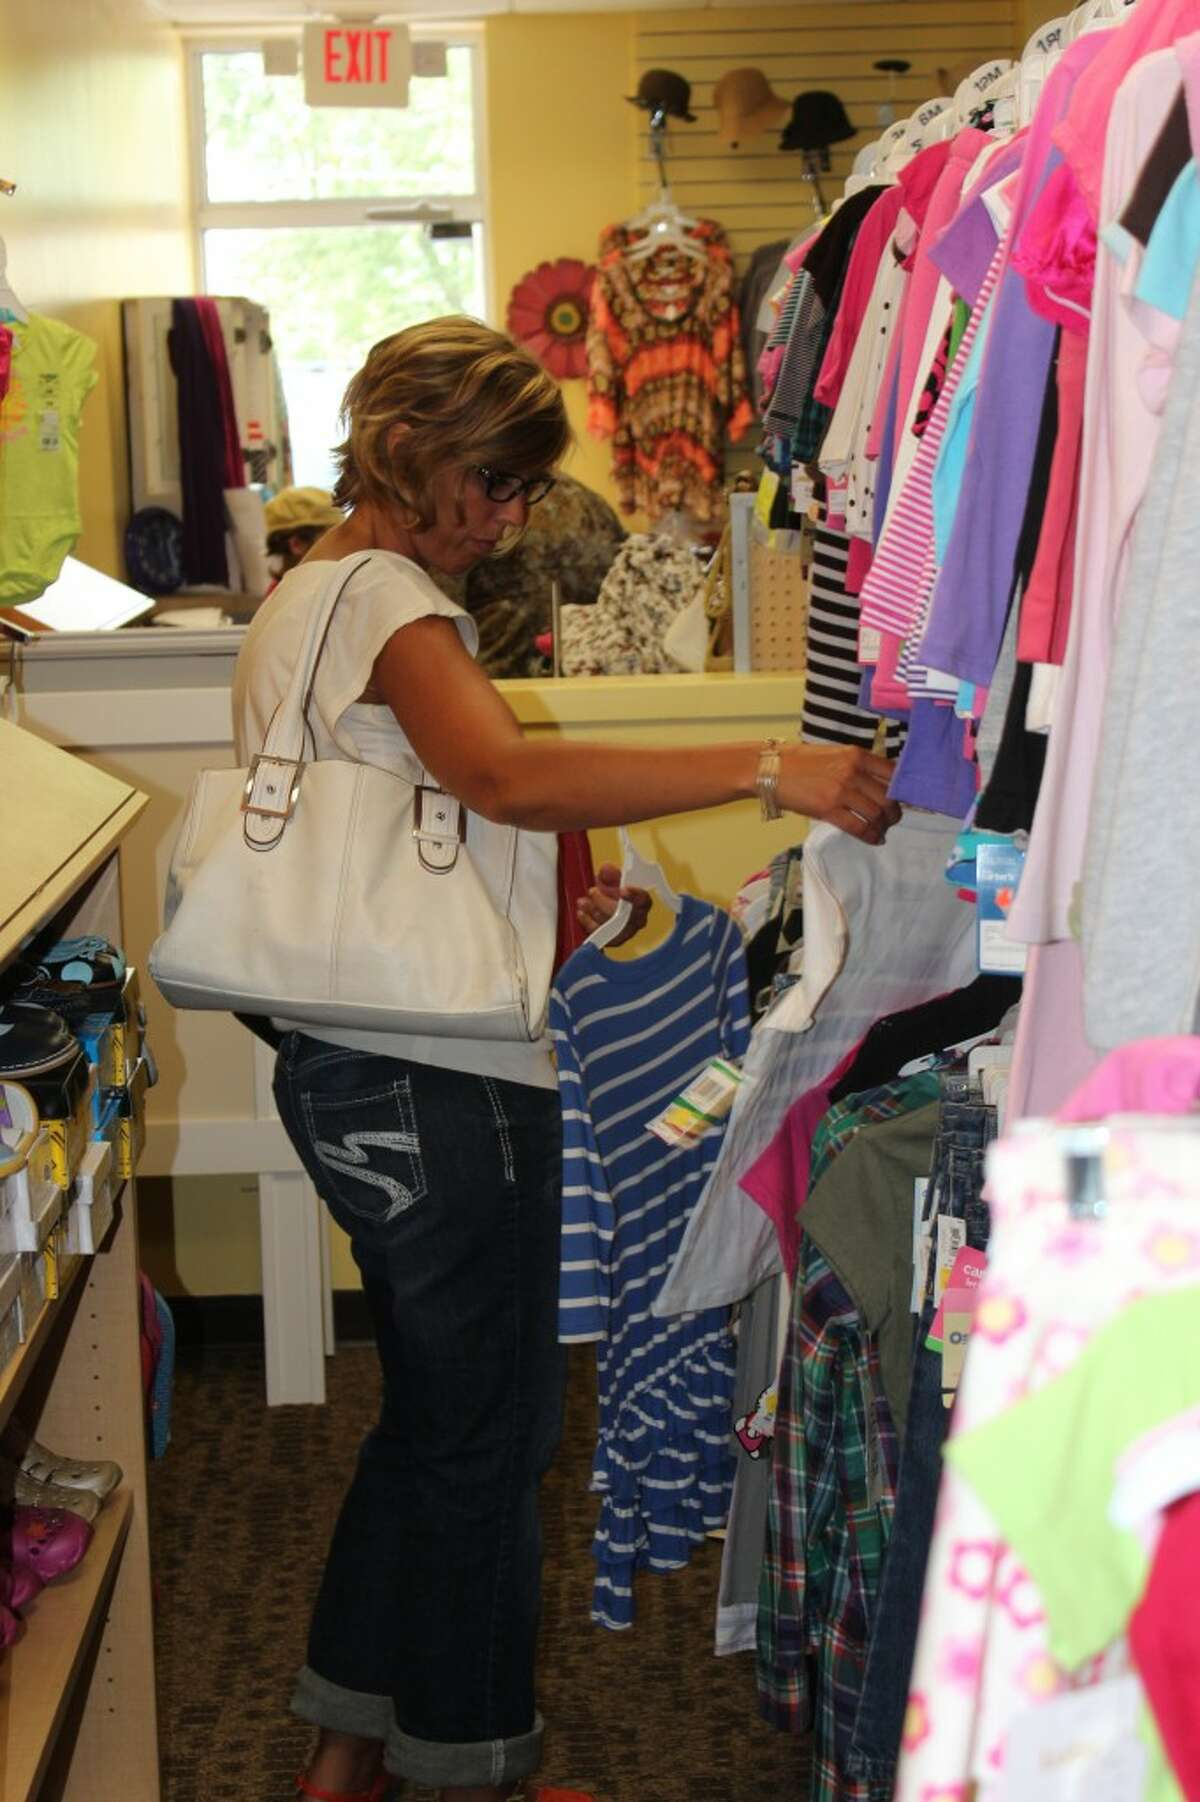 BARGAIN SHOPPING: Tanya Harrison looks through a rack of clothing at Nica's Boutique in Reed City. The store's name stands for New Inexpensive Clothing and Accessories as well as the end of owner Monica Fuller's name. (Herald Review photos/Sarah Neubecker)